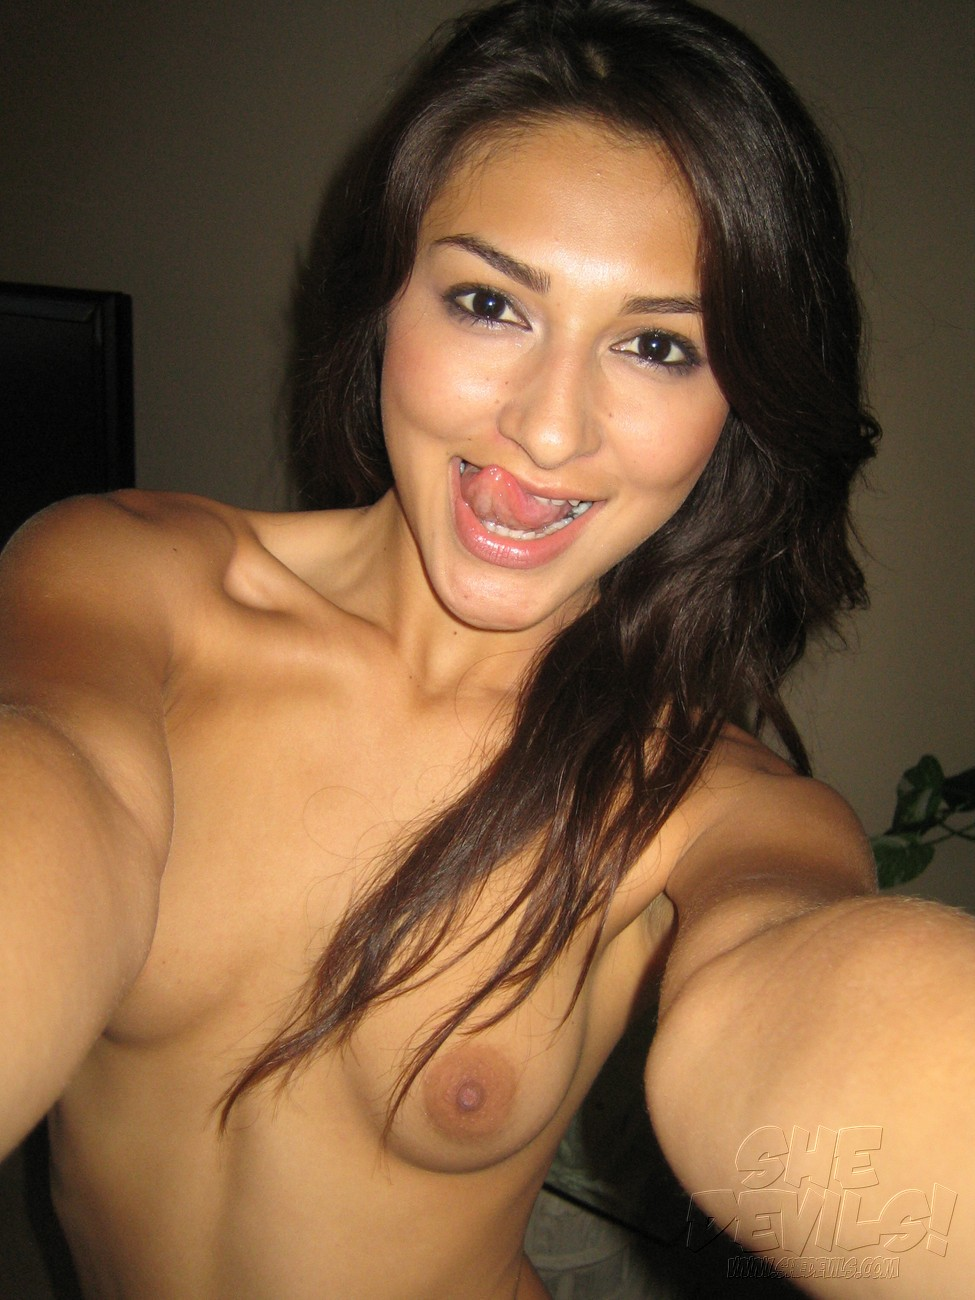 Cute latina chick nude — pic 10